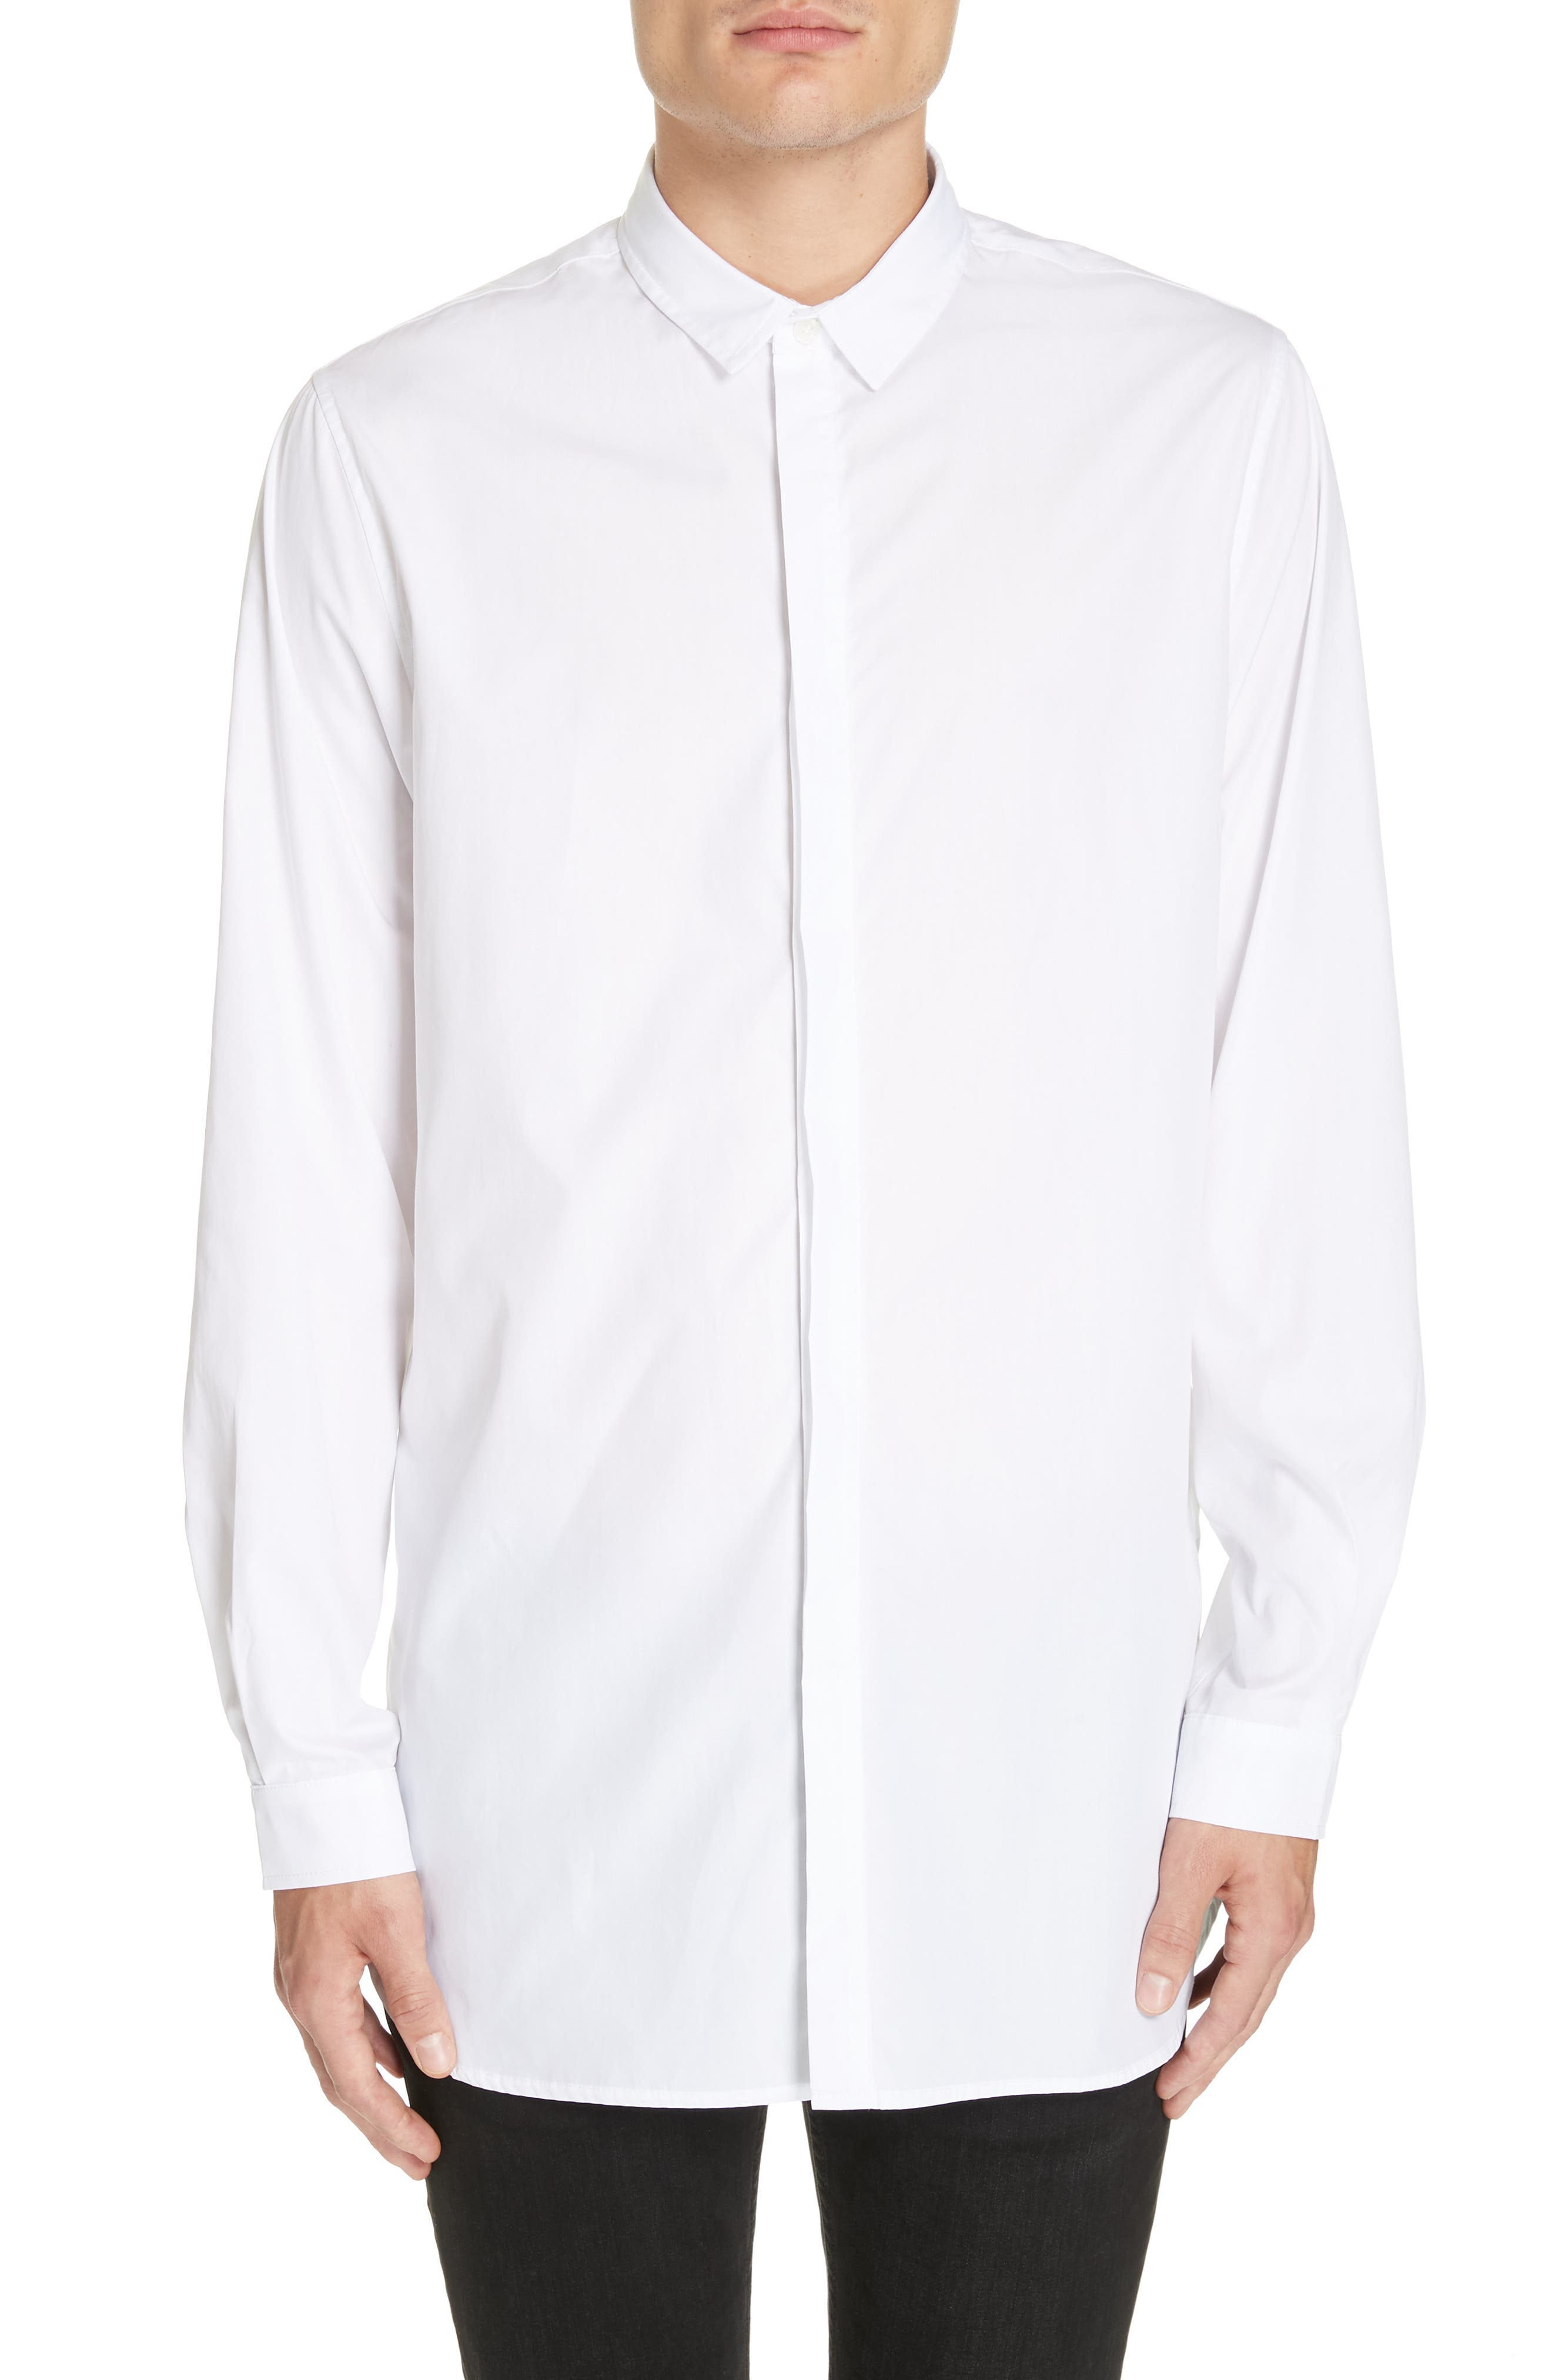 STAMPD Essential Shirt in White